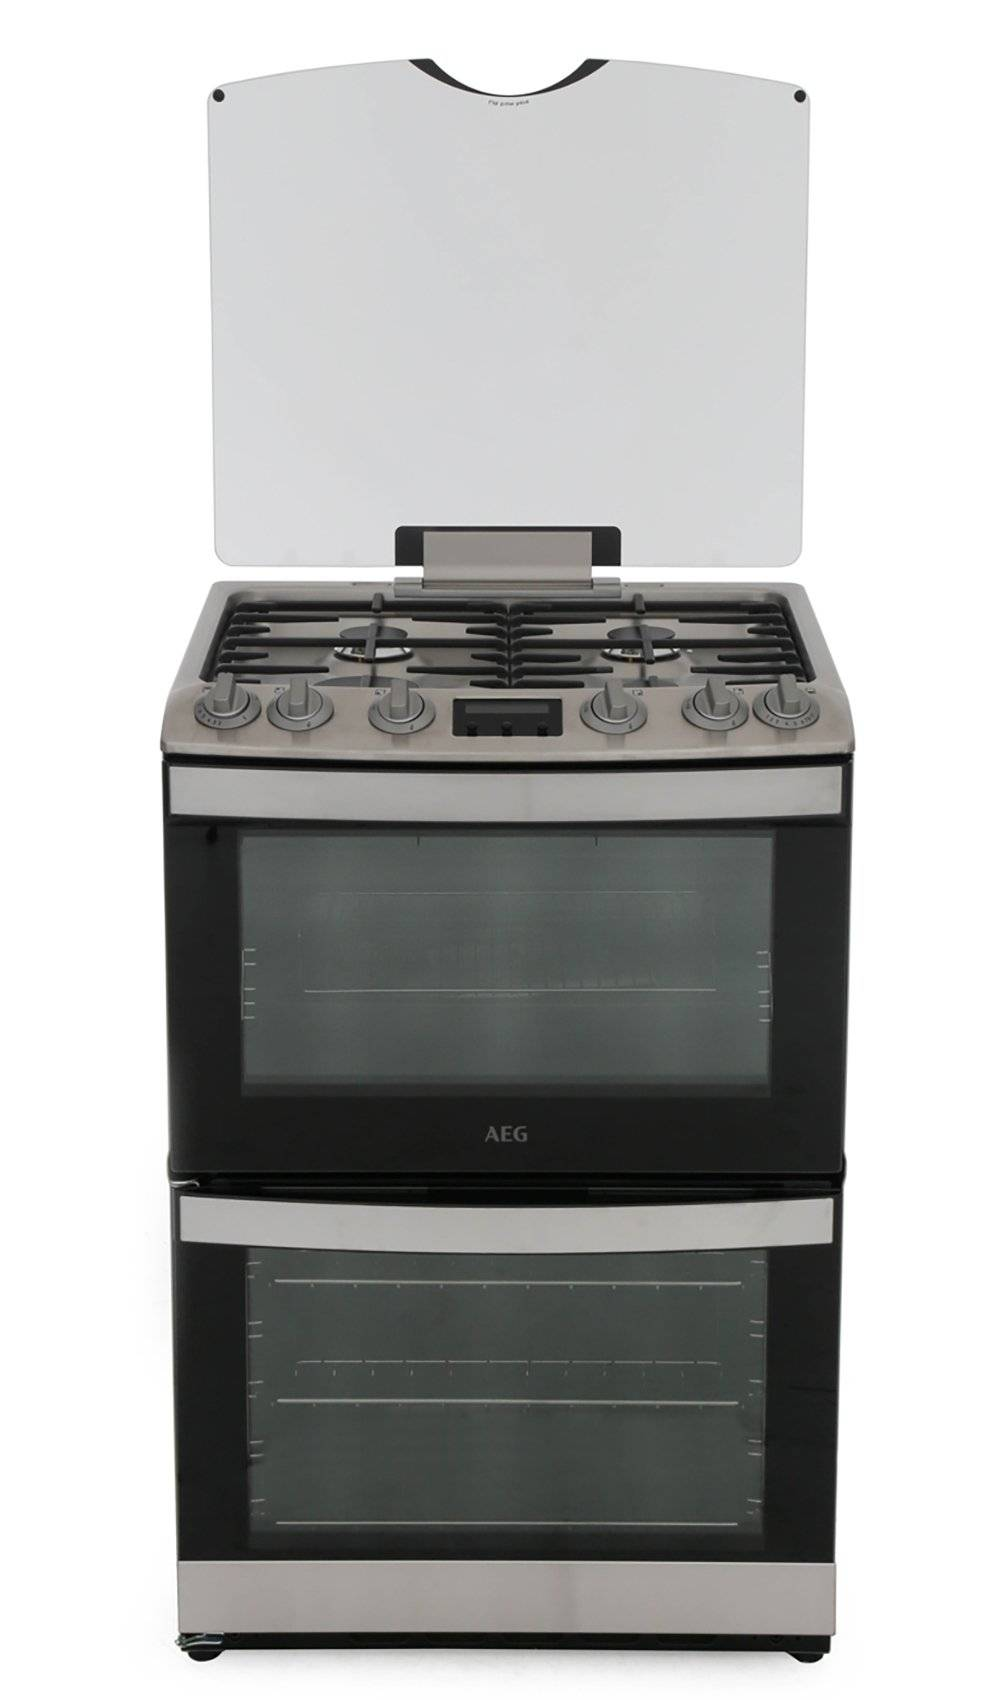 AEG Gas Cooker with Double Oven - Stainless Steel - A Rated - CGB6133CCM